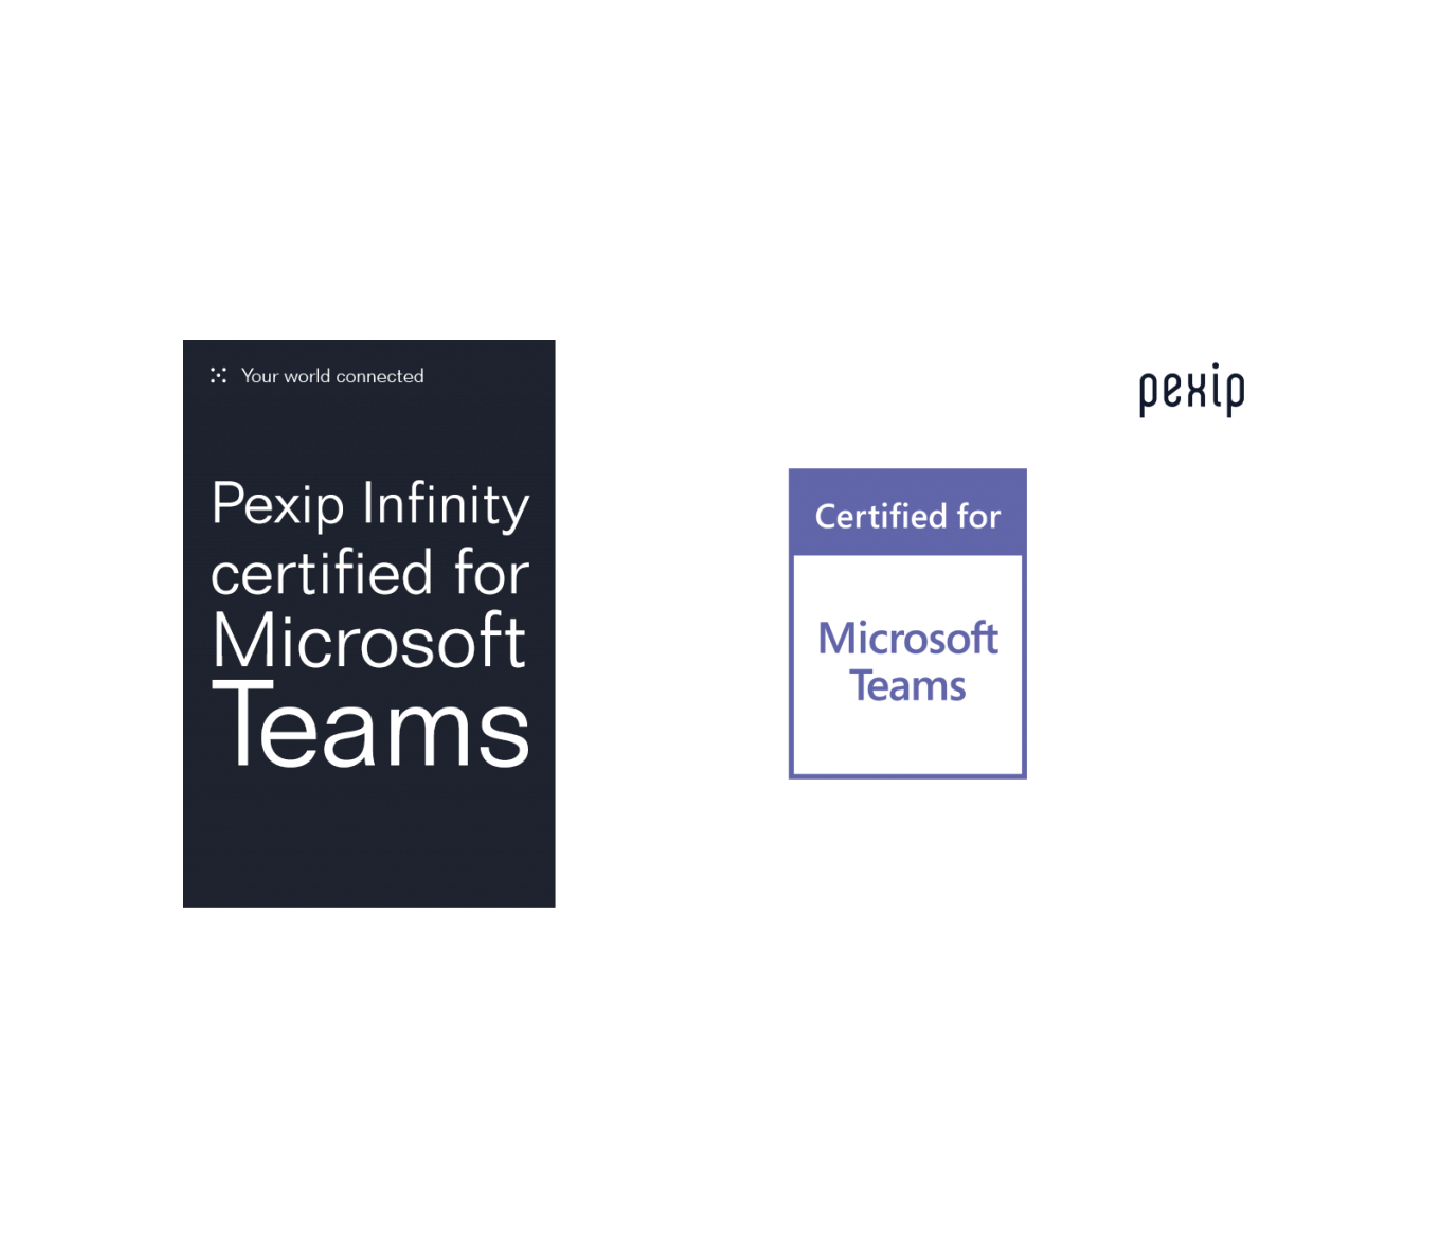 microsoft teams-5